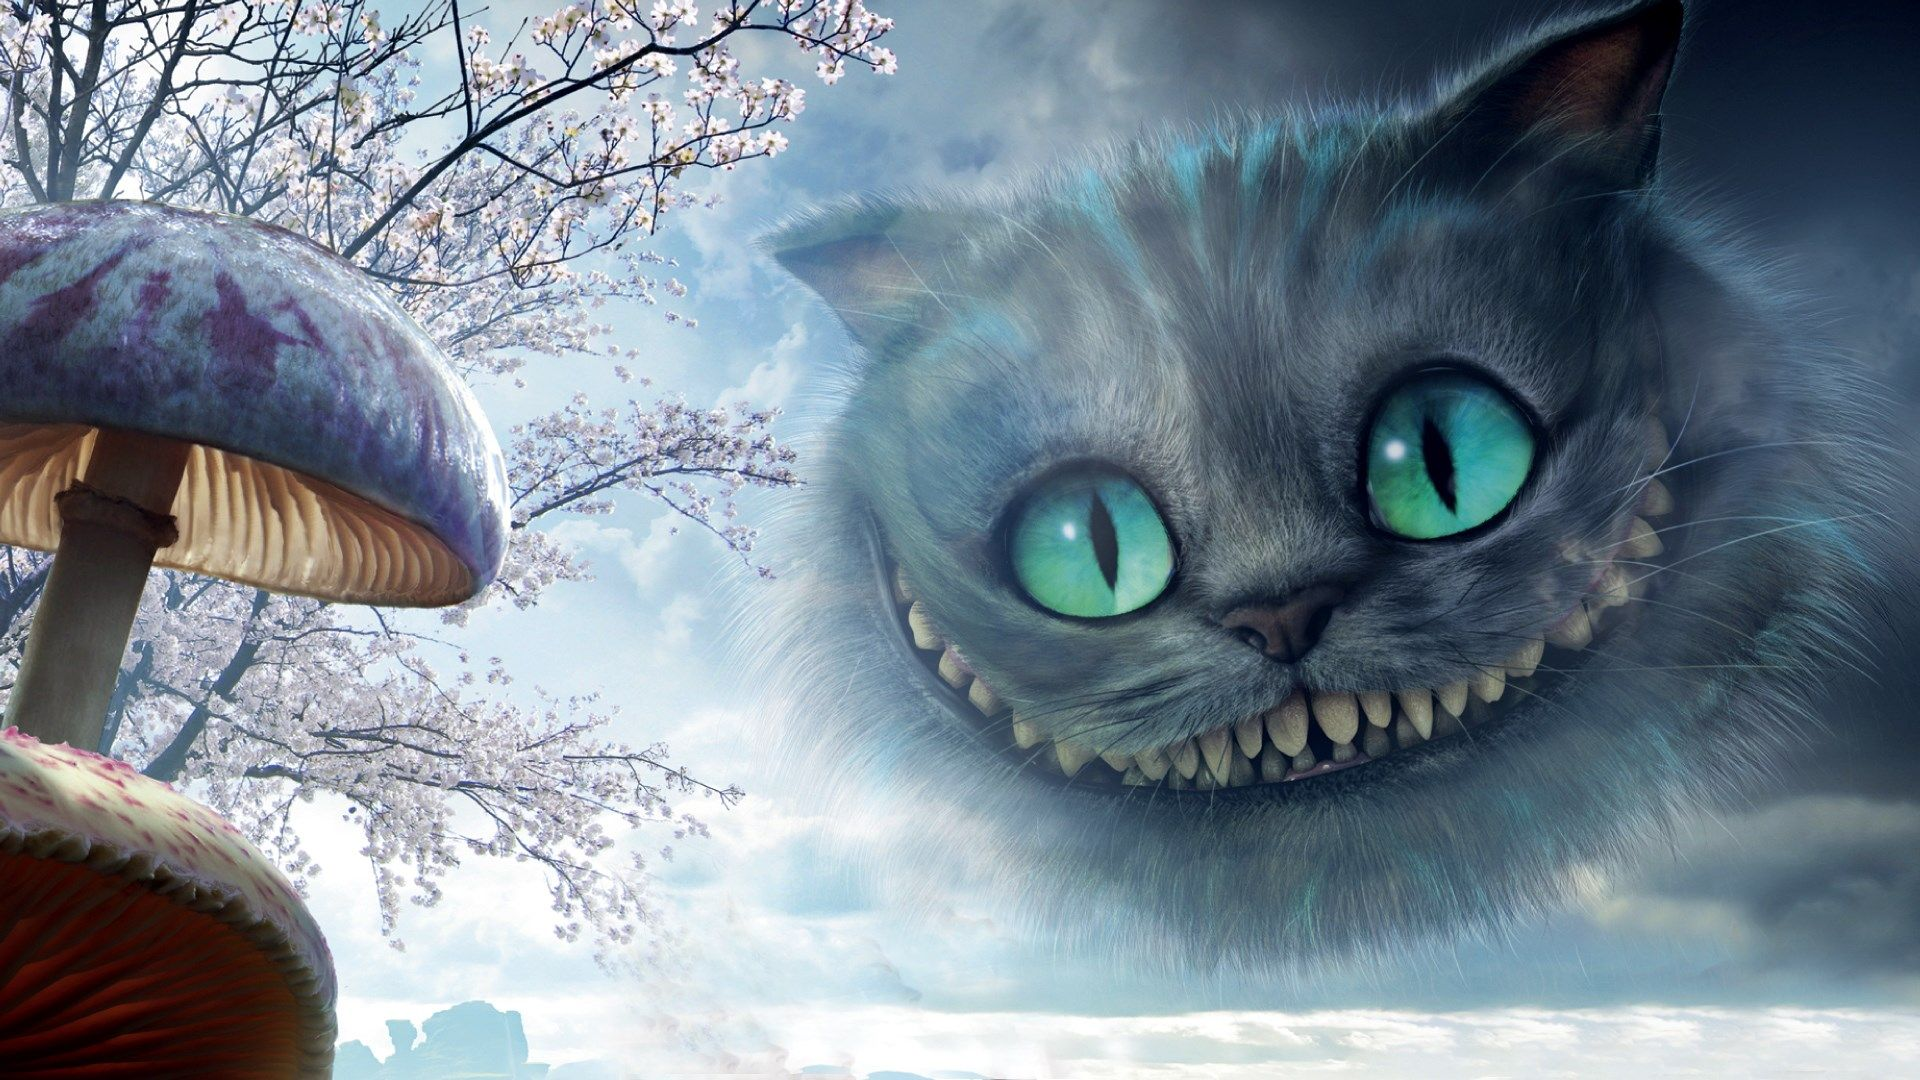 1920x1080 Cheshire Cat Wallpaper Hd Backgrounds Images Jpg 445 Kb